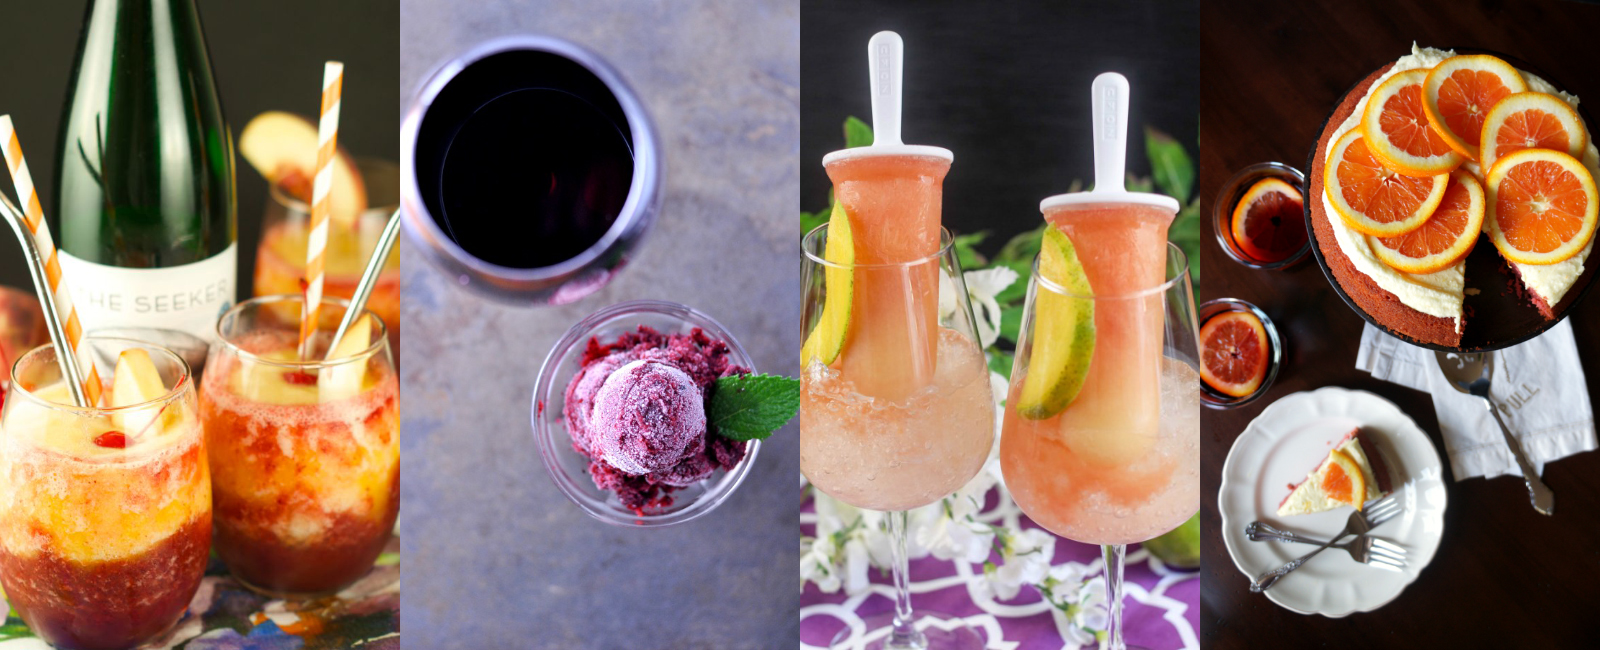 12 Recipes That Use Wine